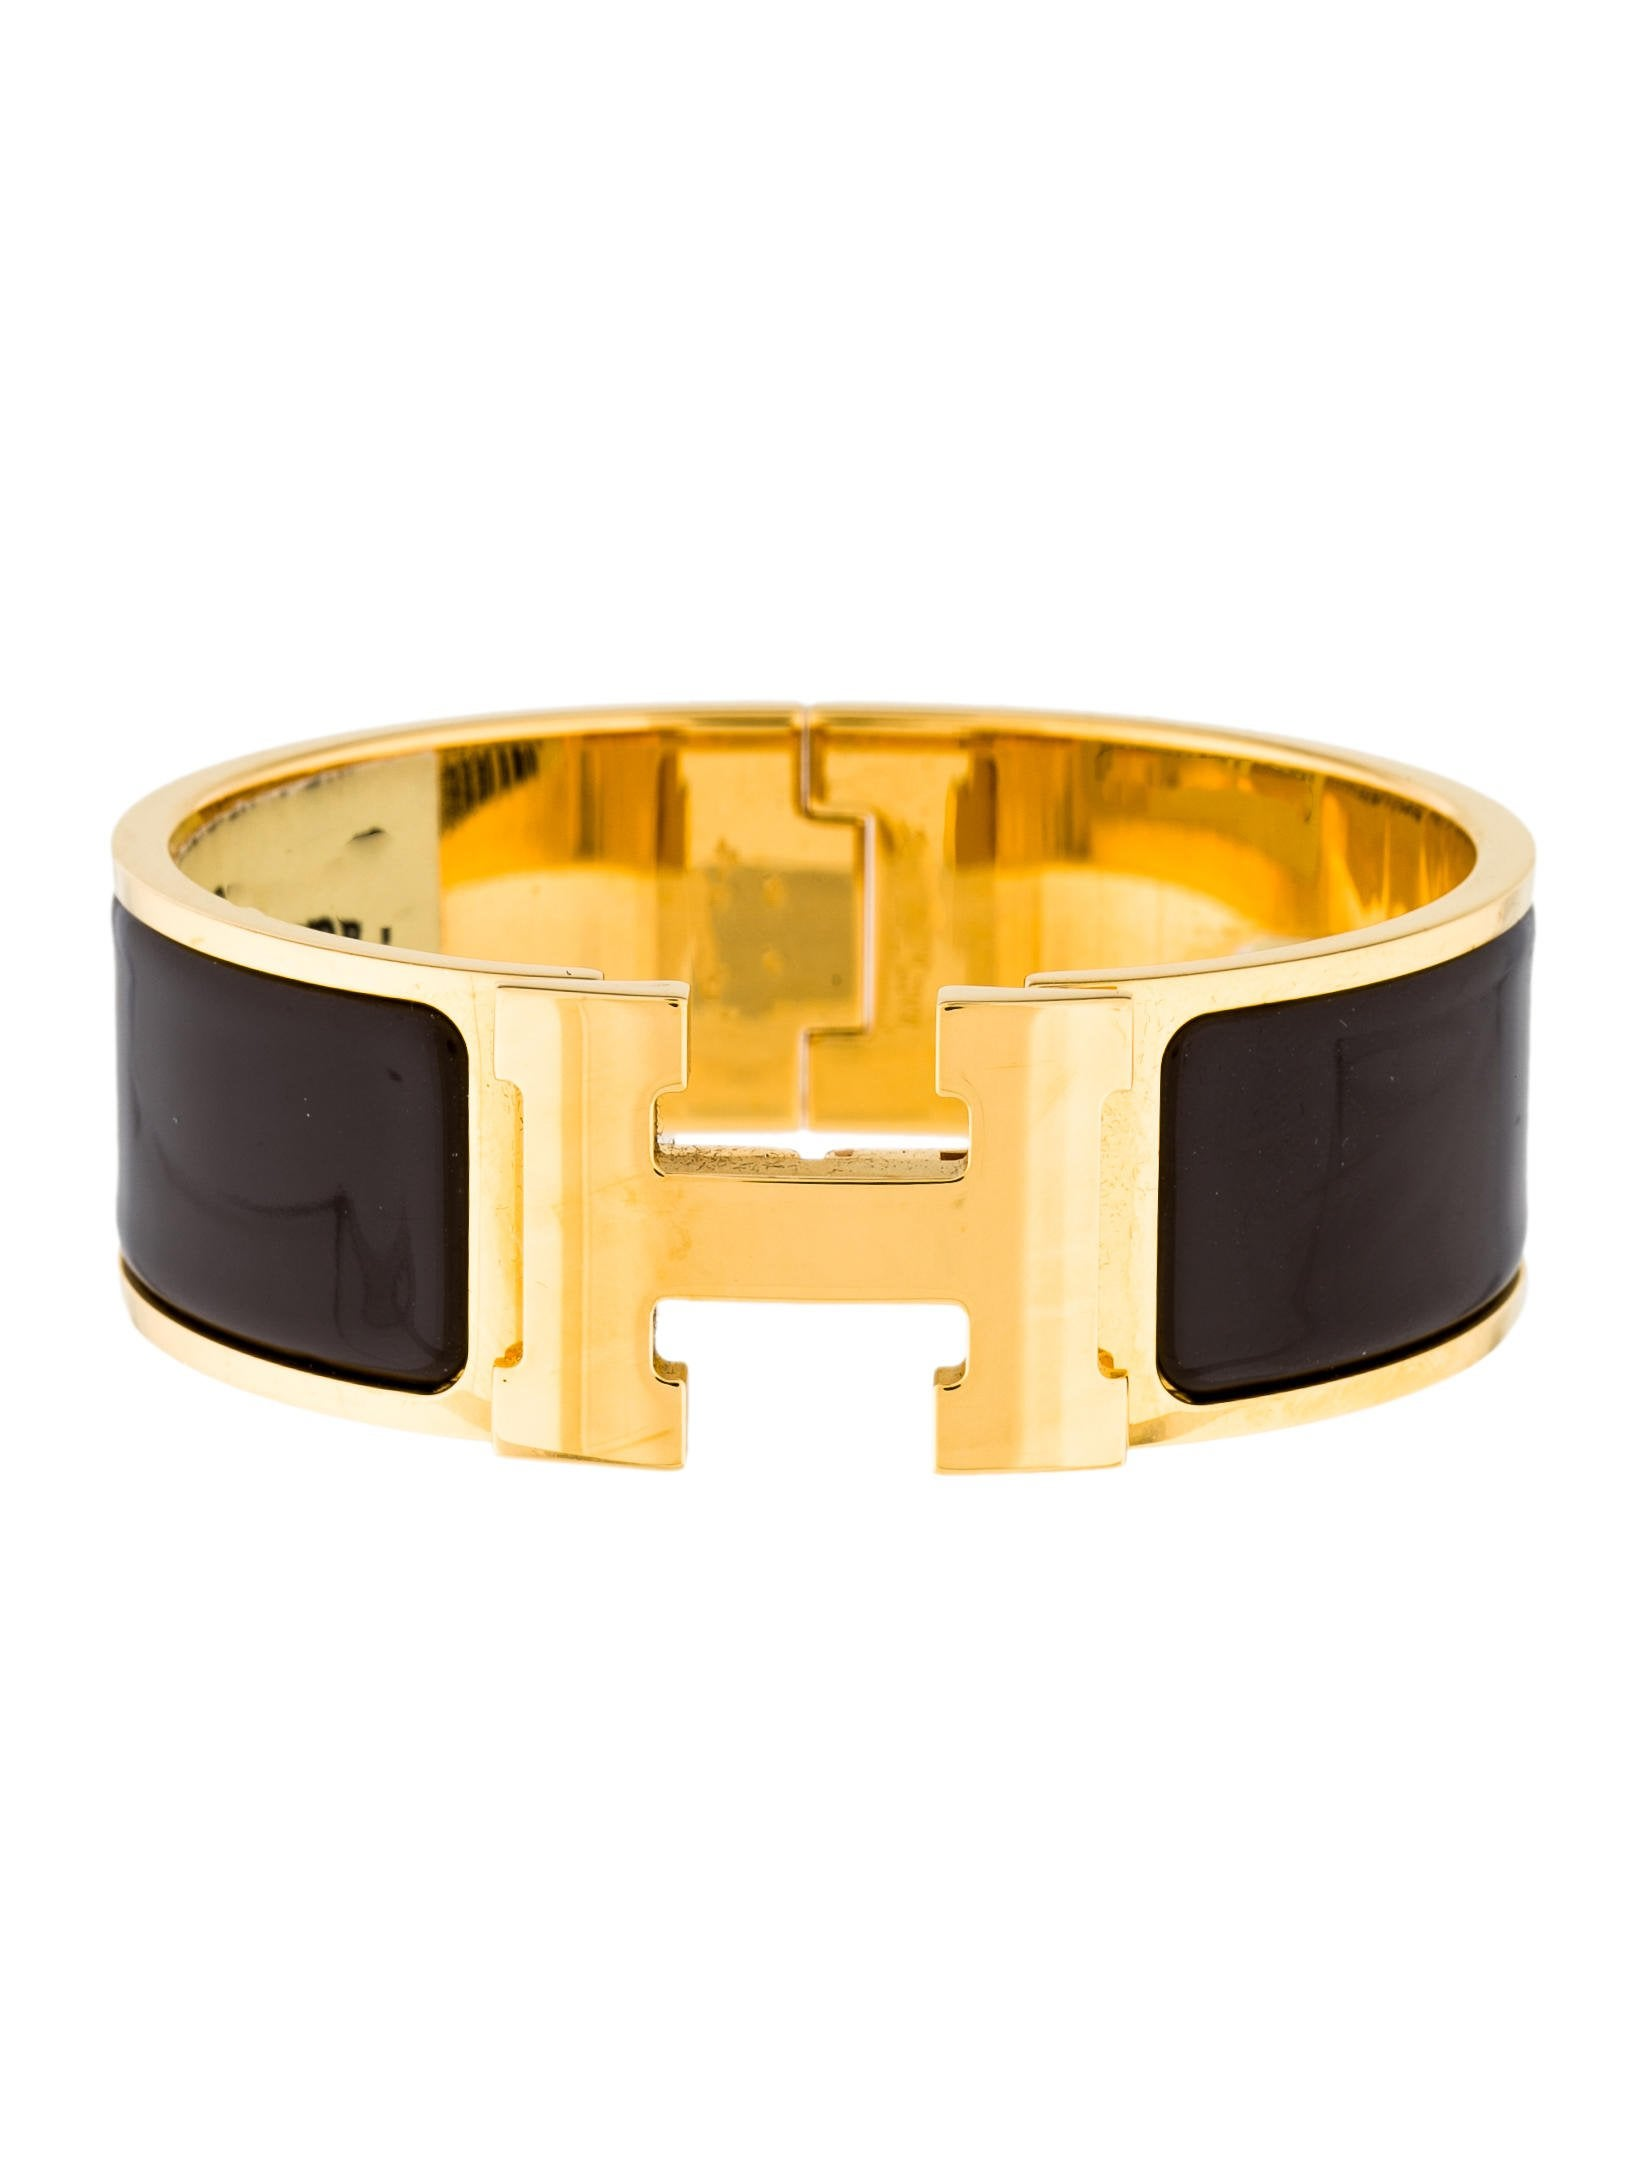 herm 232 s clic clac h bracelet bracelets her104089 the realreal